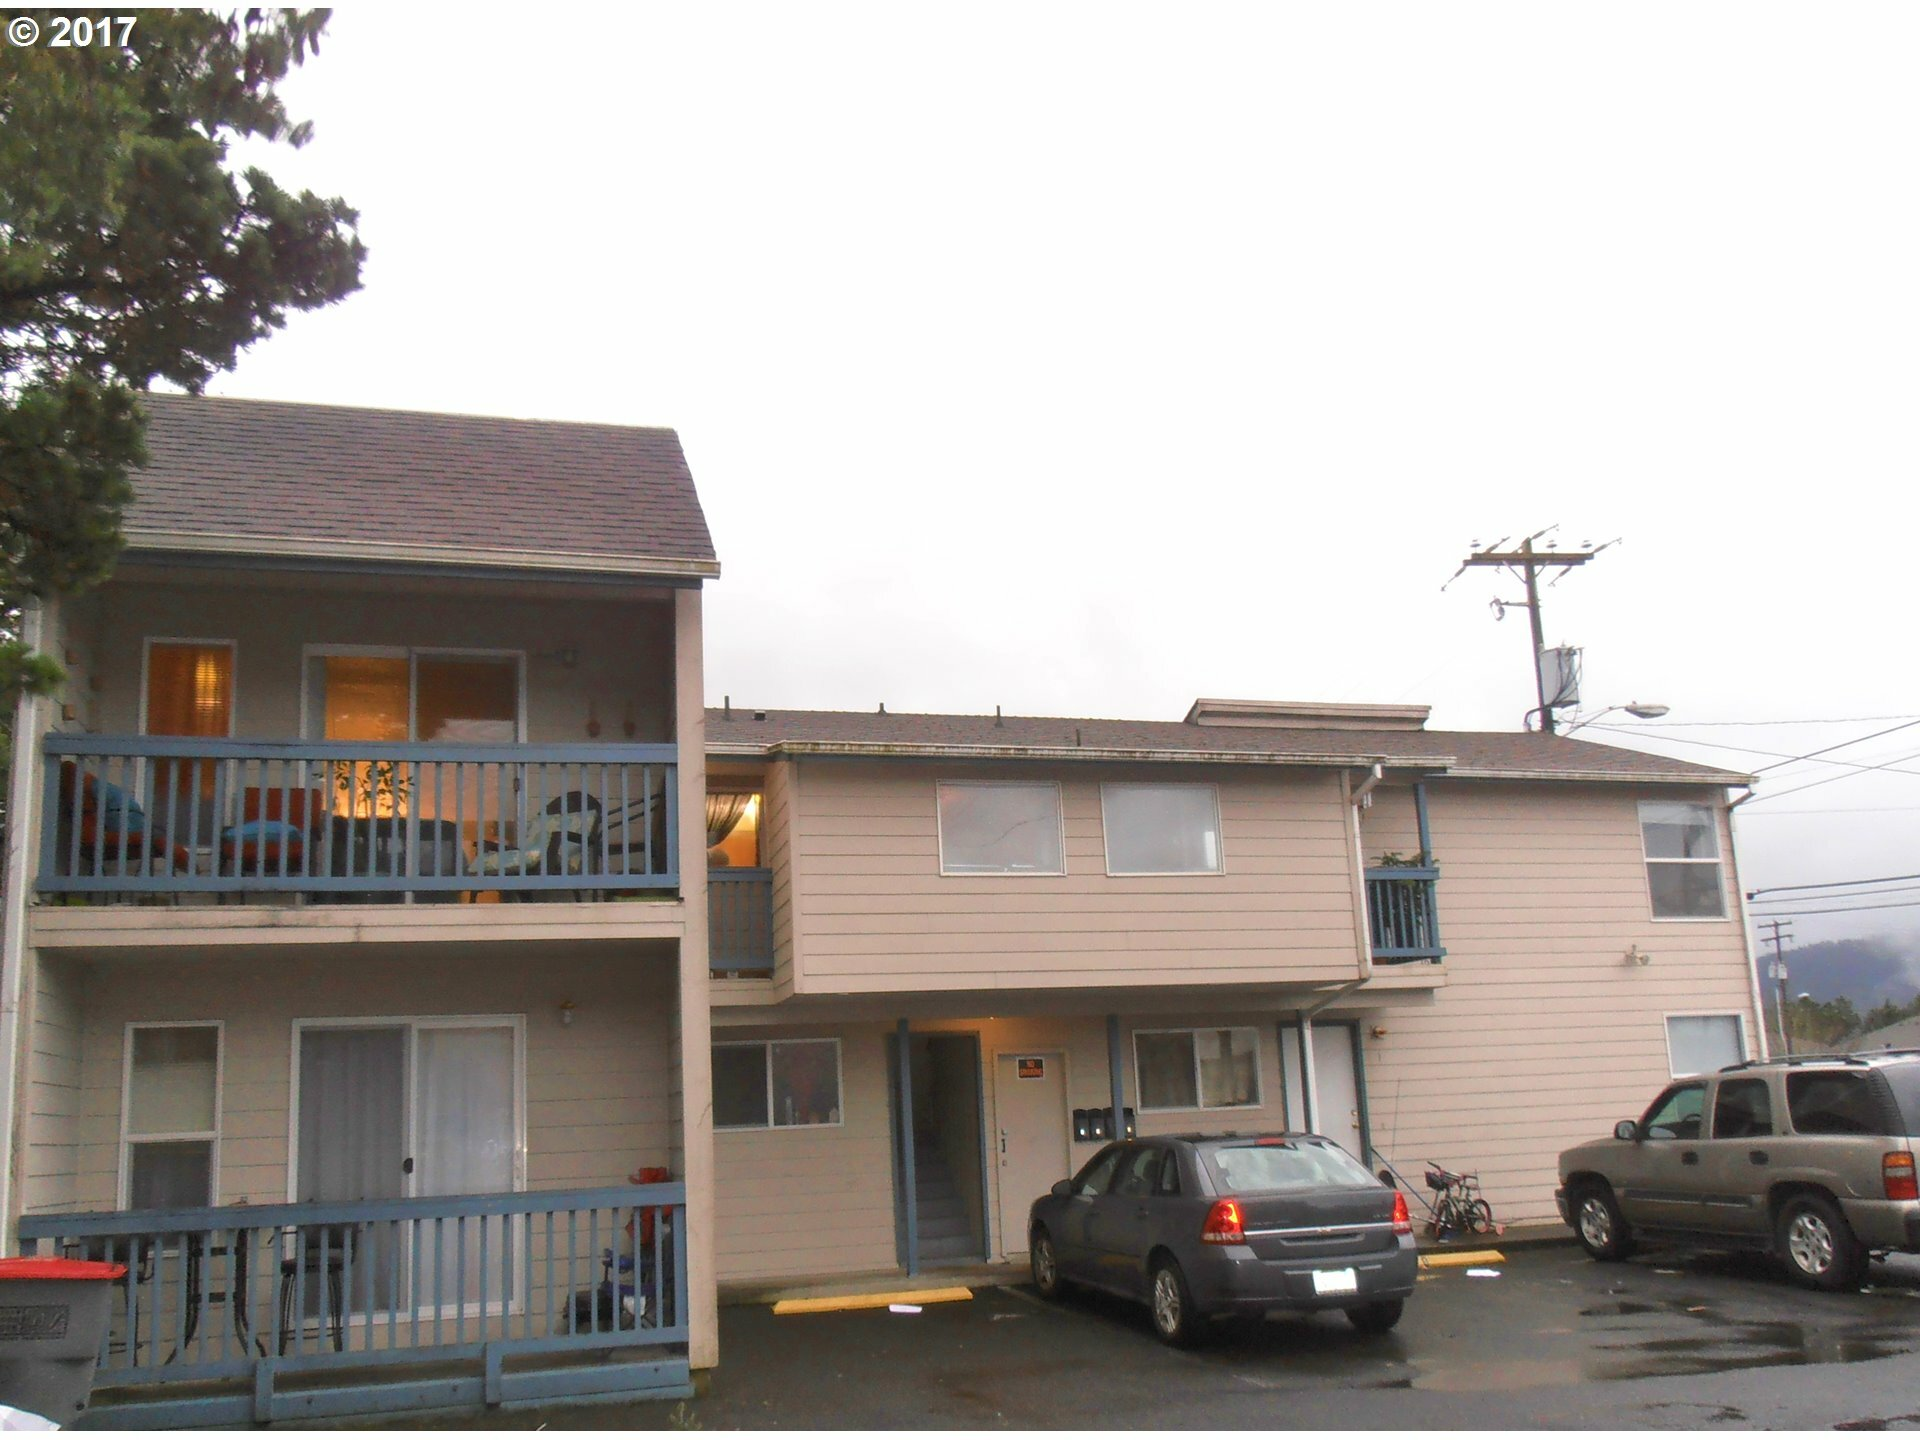 585 S Holladay Dr, Seaside, OR - USA (photo 1)